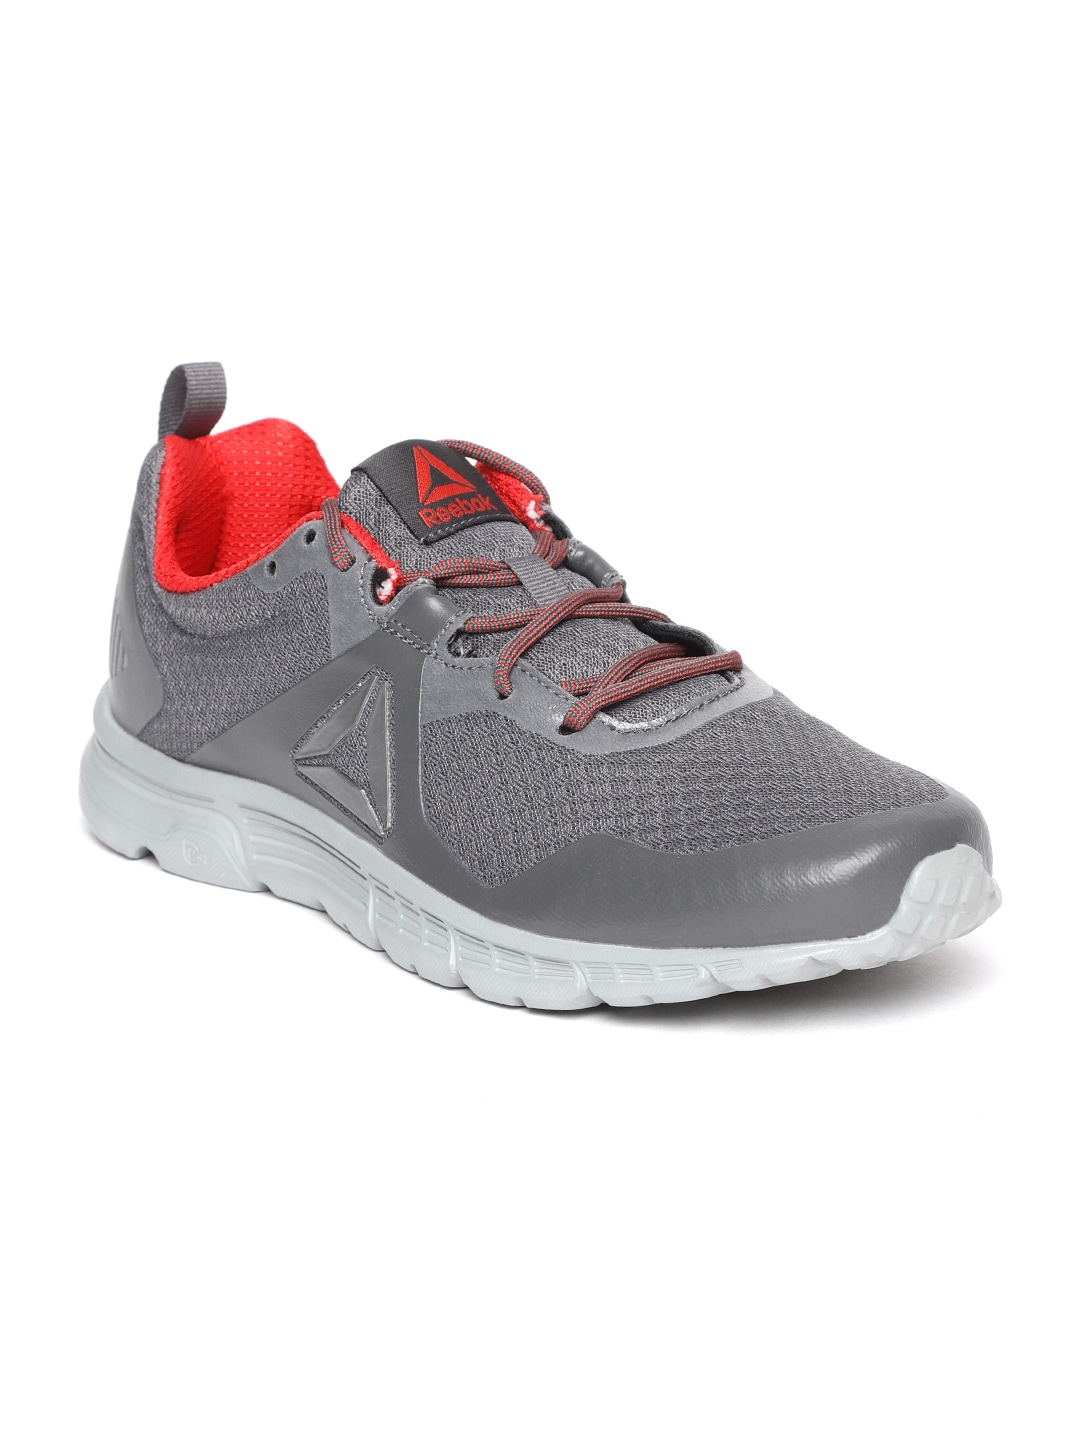 a59f47233e70 Reebok Shoes - Buy Reebok Shoes For Men   Women Online